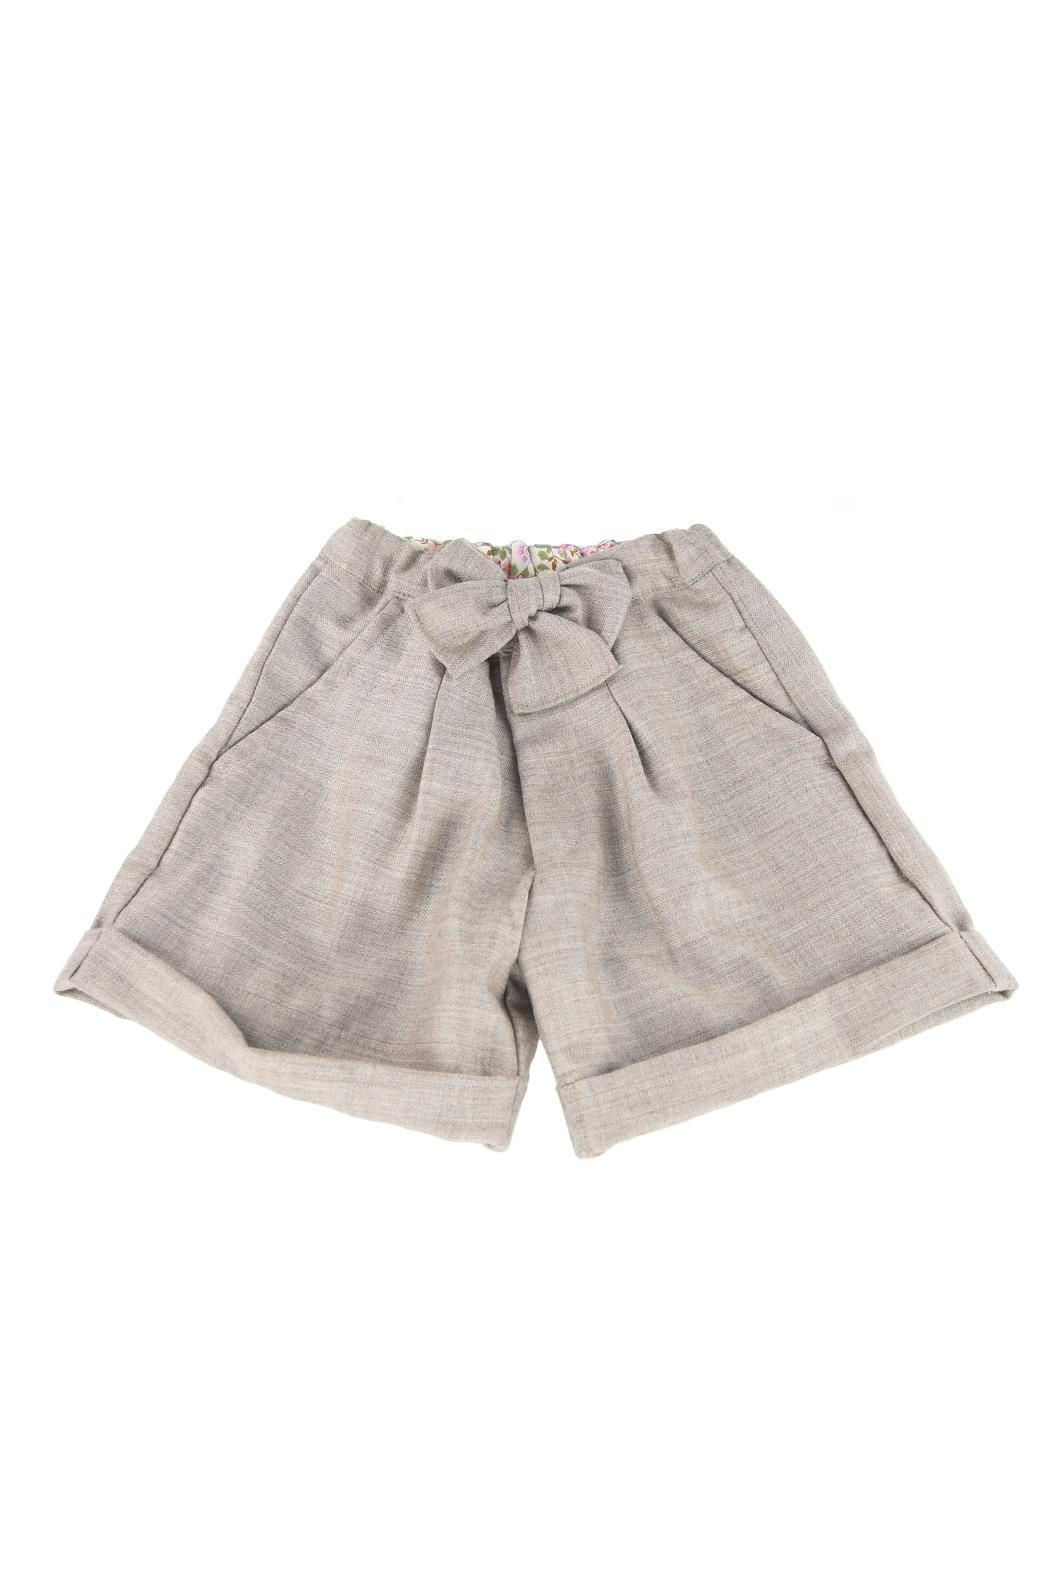 Malvi & Co. Oatmeal Shorts. - Main Image